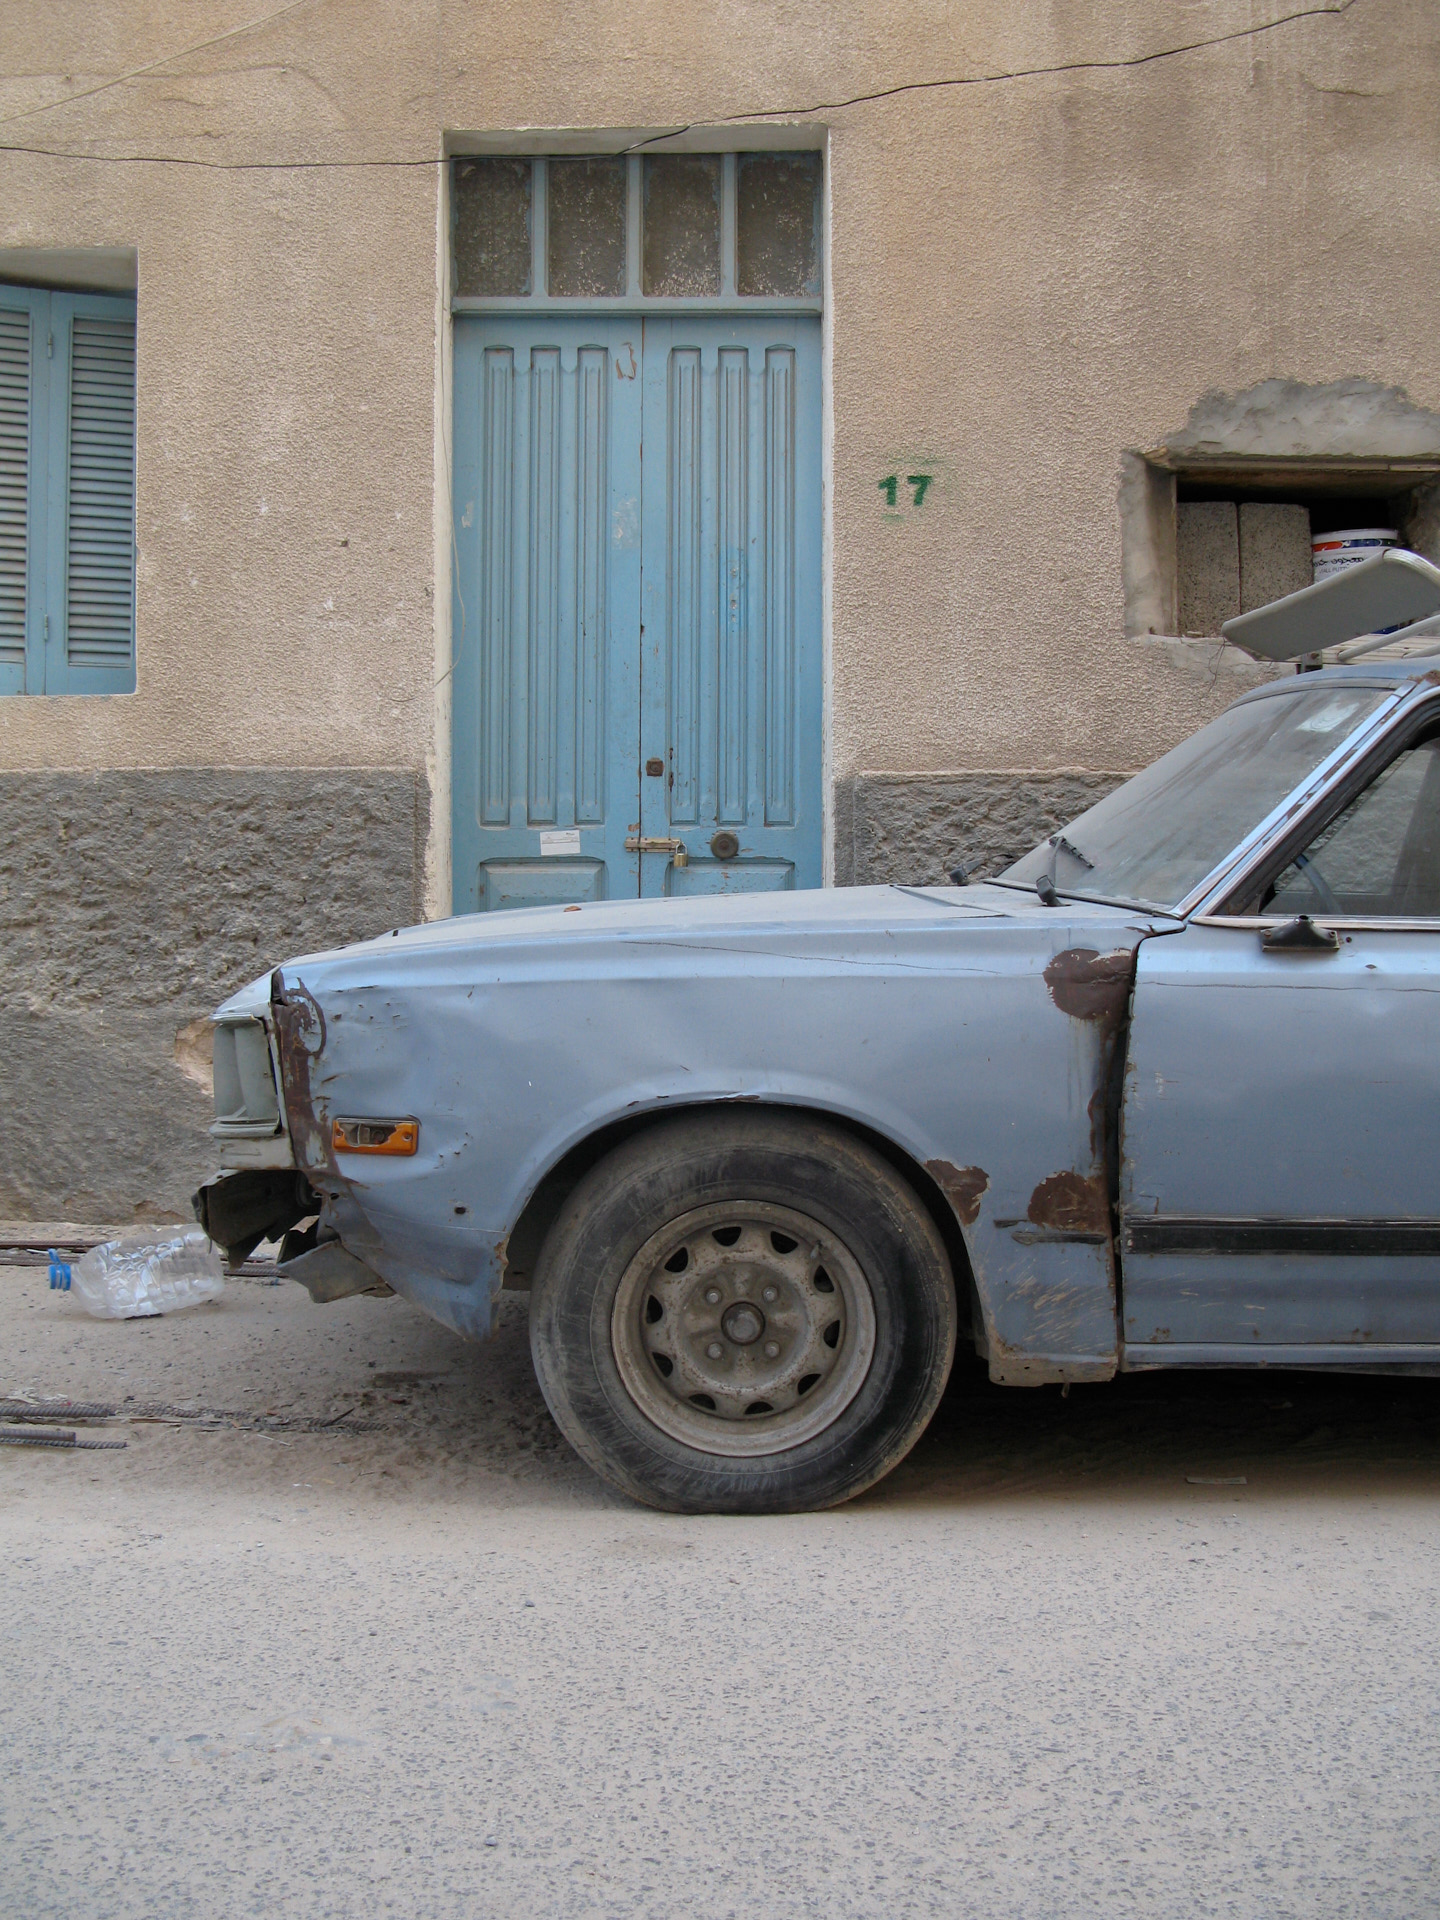 Old car and door. Dhara, Tripoli.